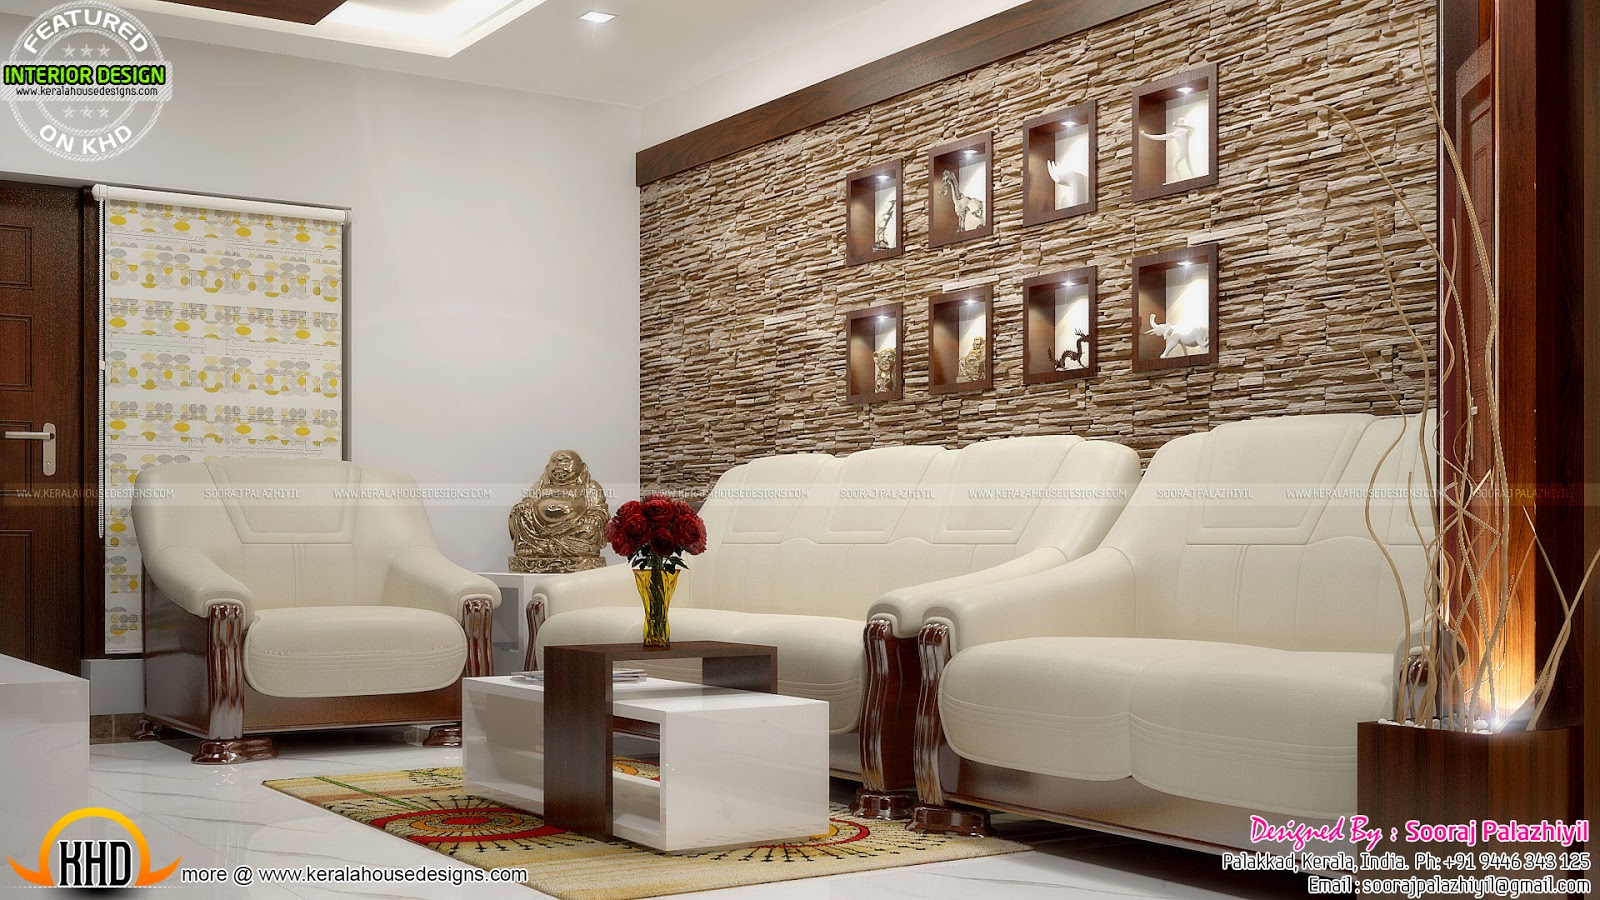 Simple apartment interior in kerala kerala home design for Home interior design ideas wallpapers